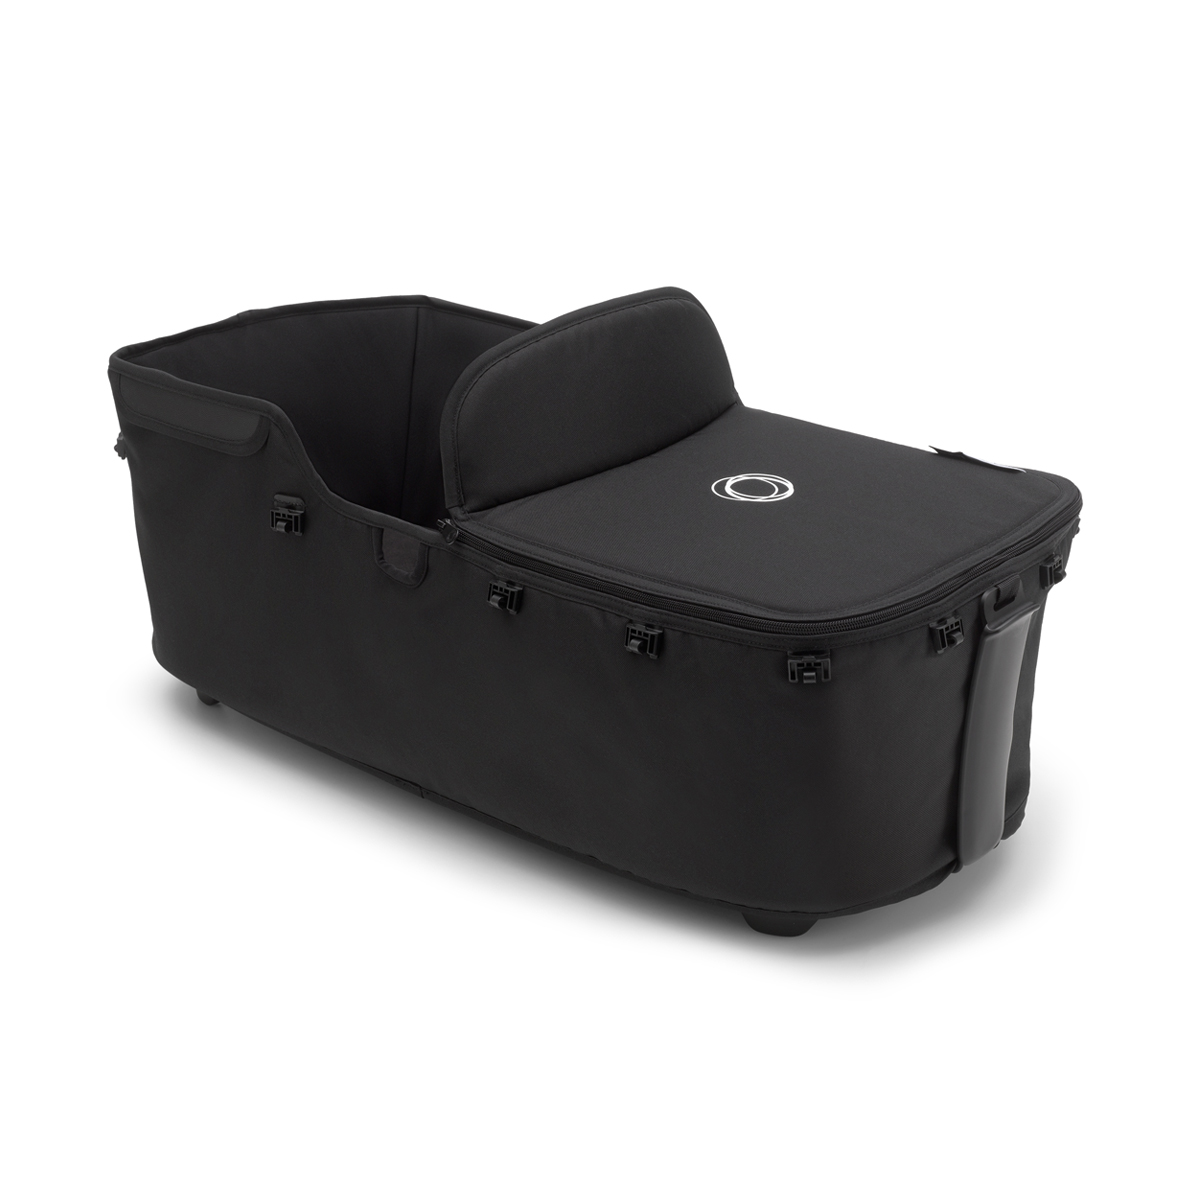 Bugaboo Lynx Stroller Bassinet in Black